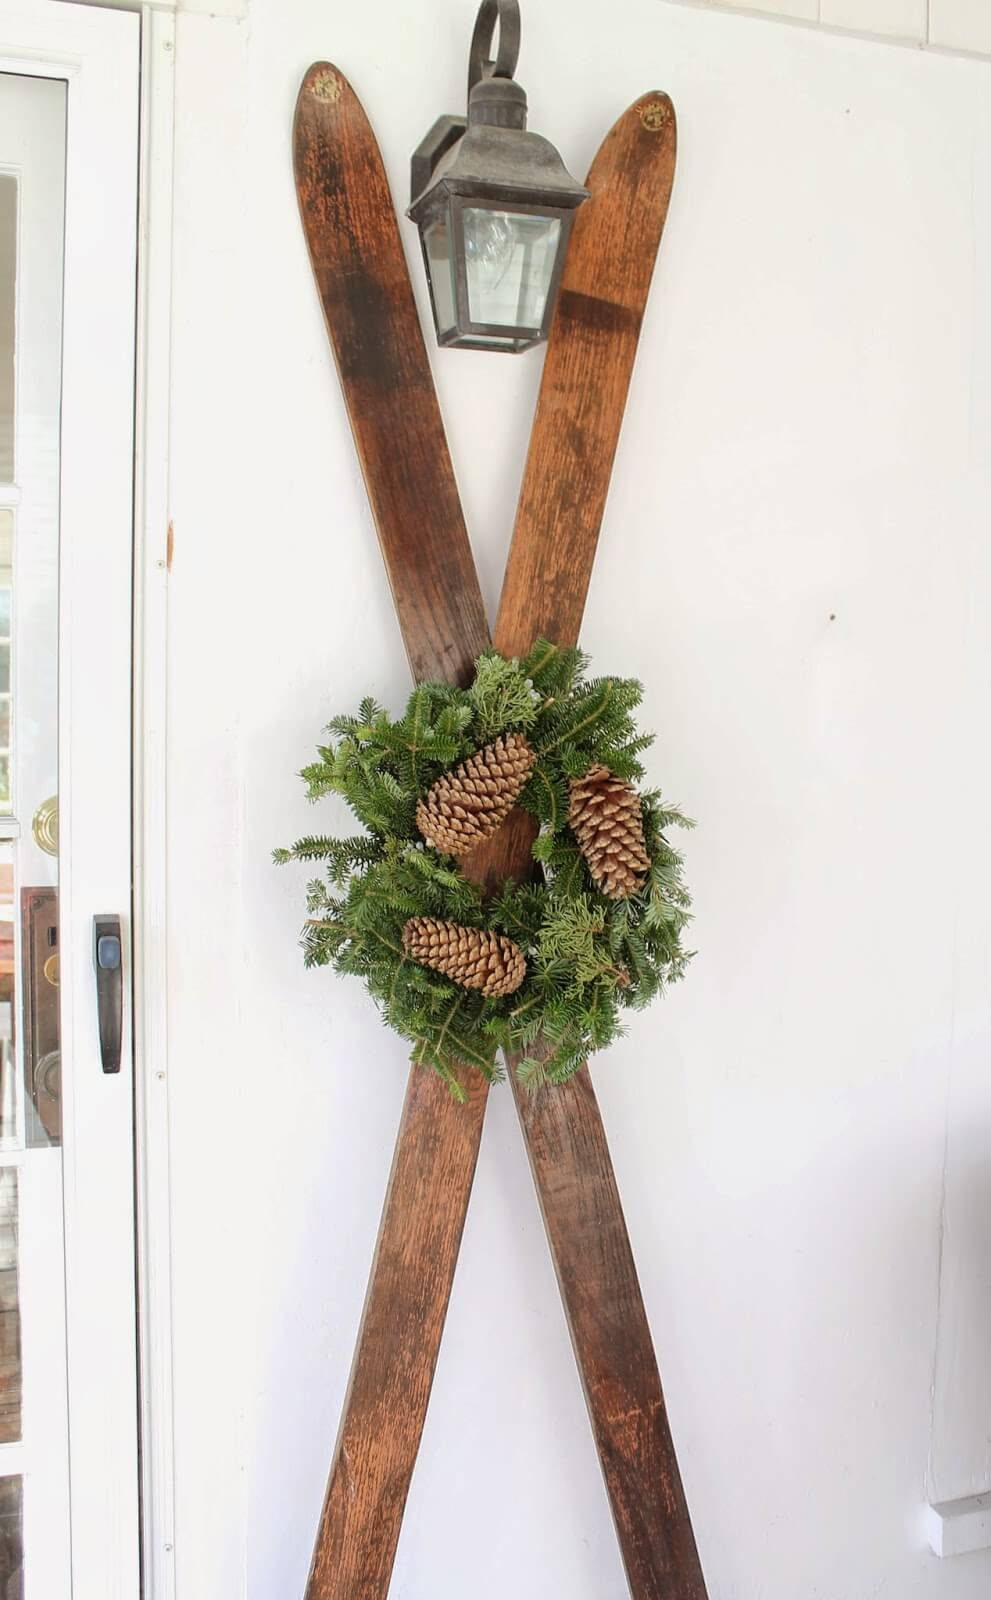 Nice antique skis with pinecone wreath.